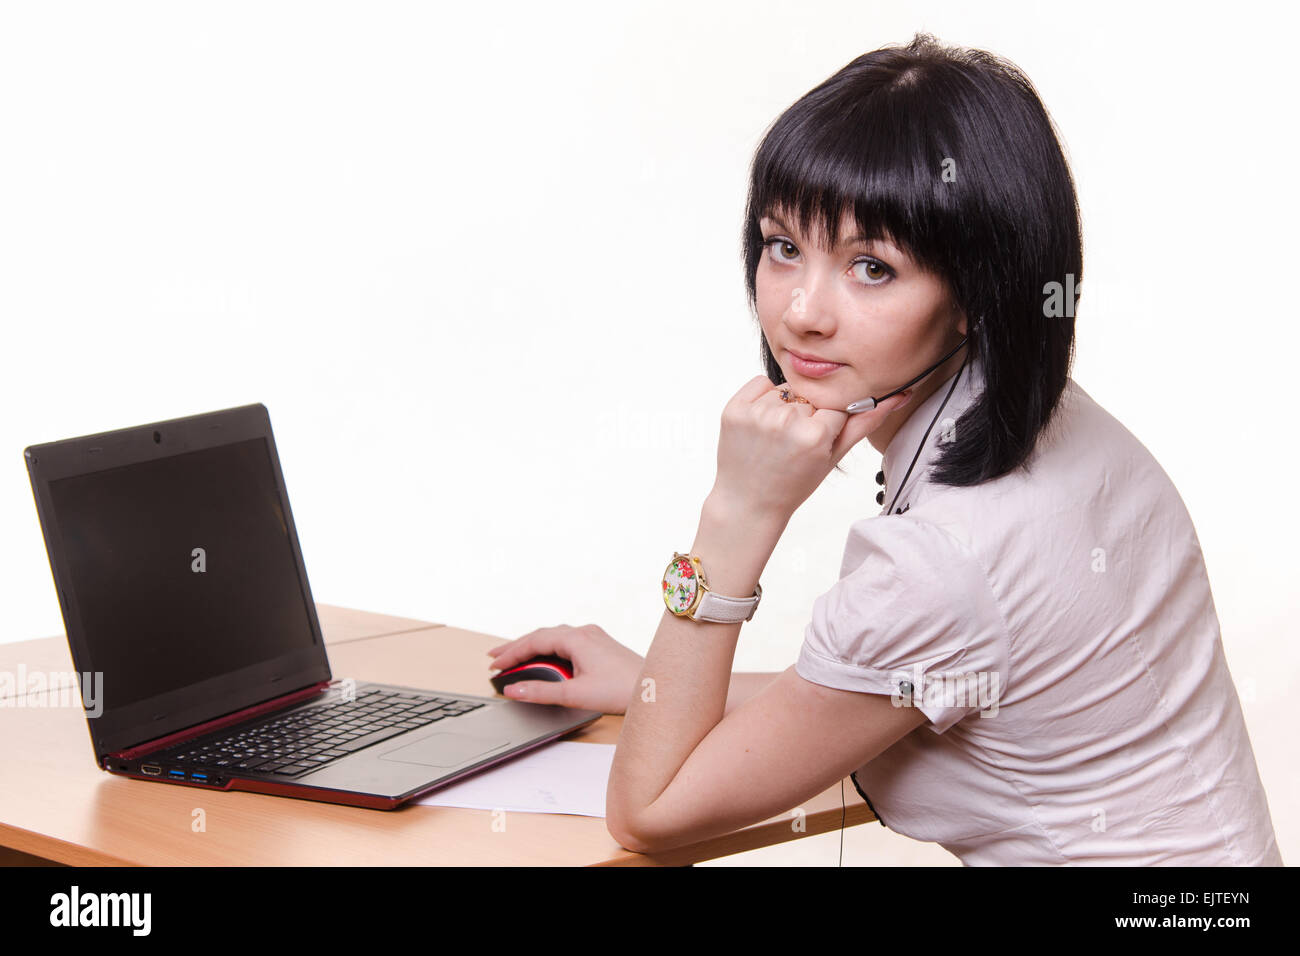 Cute office girl sitting at a table with a laptop in white blouse - Stock Image